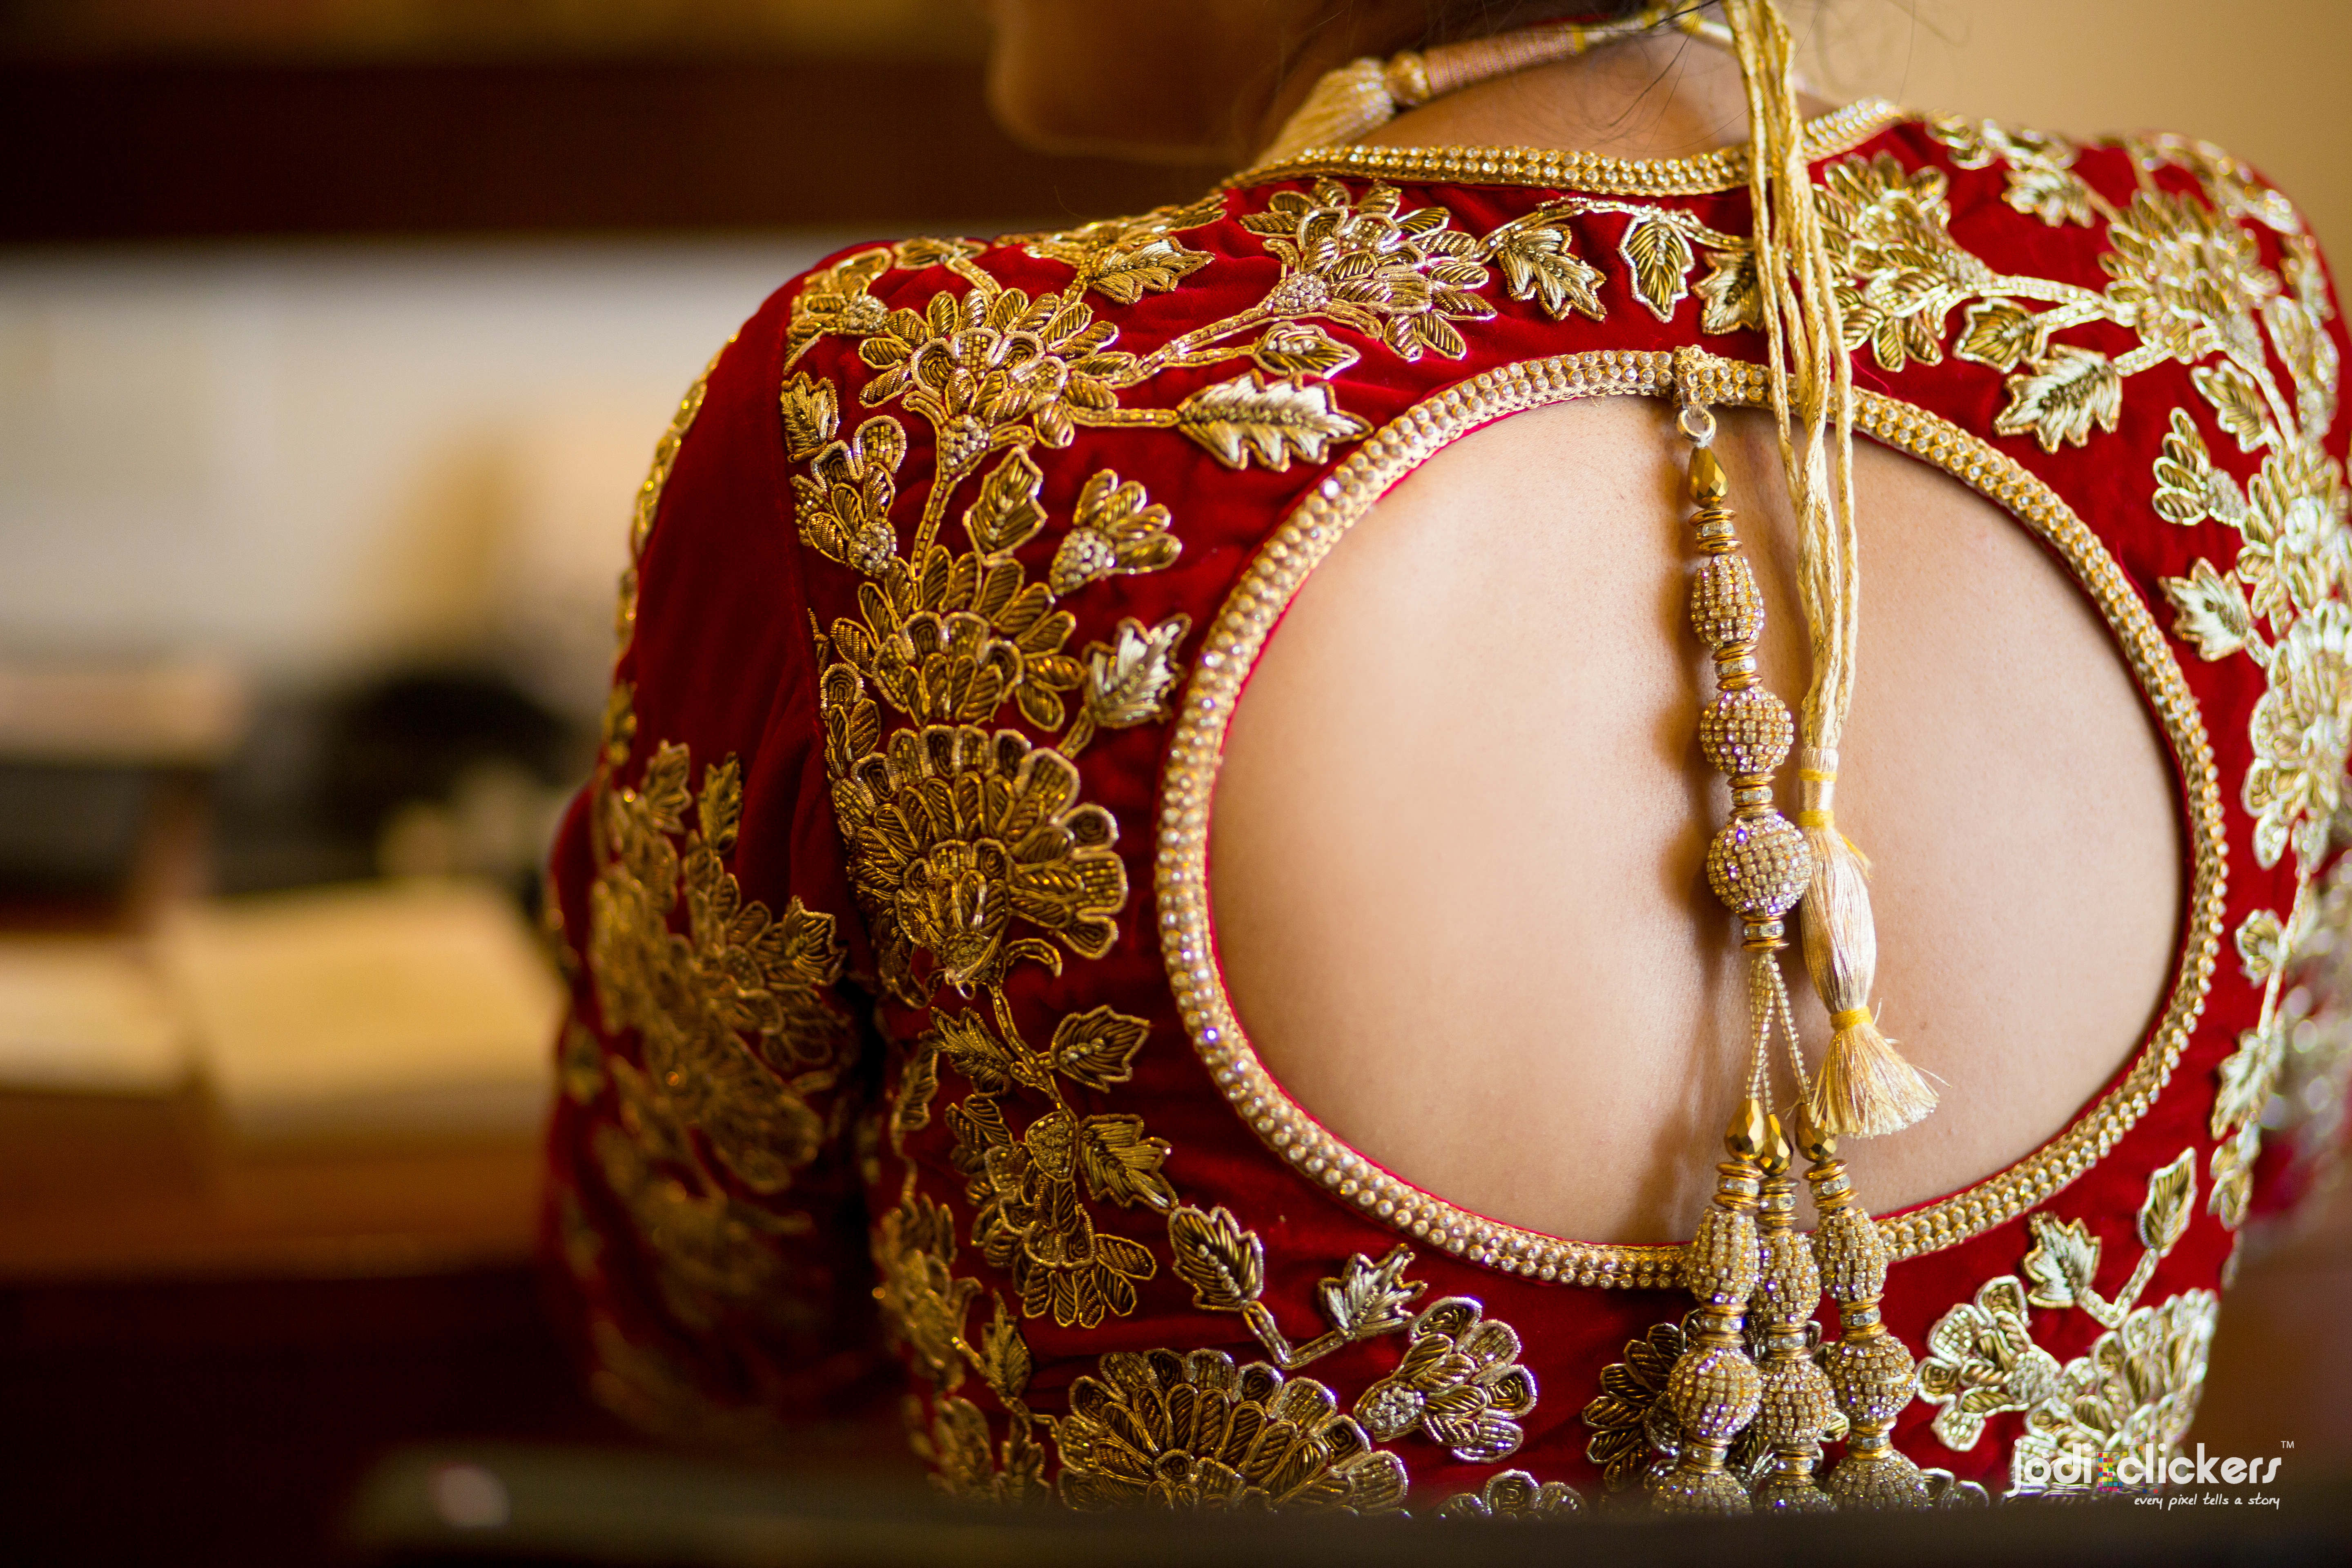 the bridal lehenga!:jodi clickers, f5 advertainment, manish malhotra